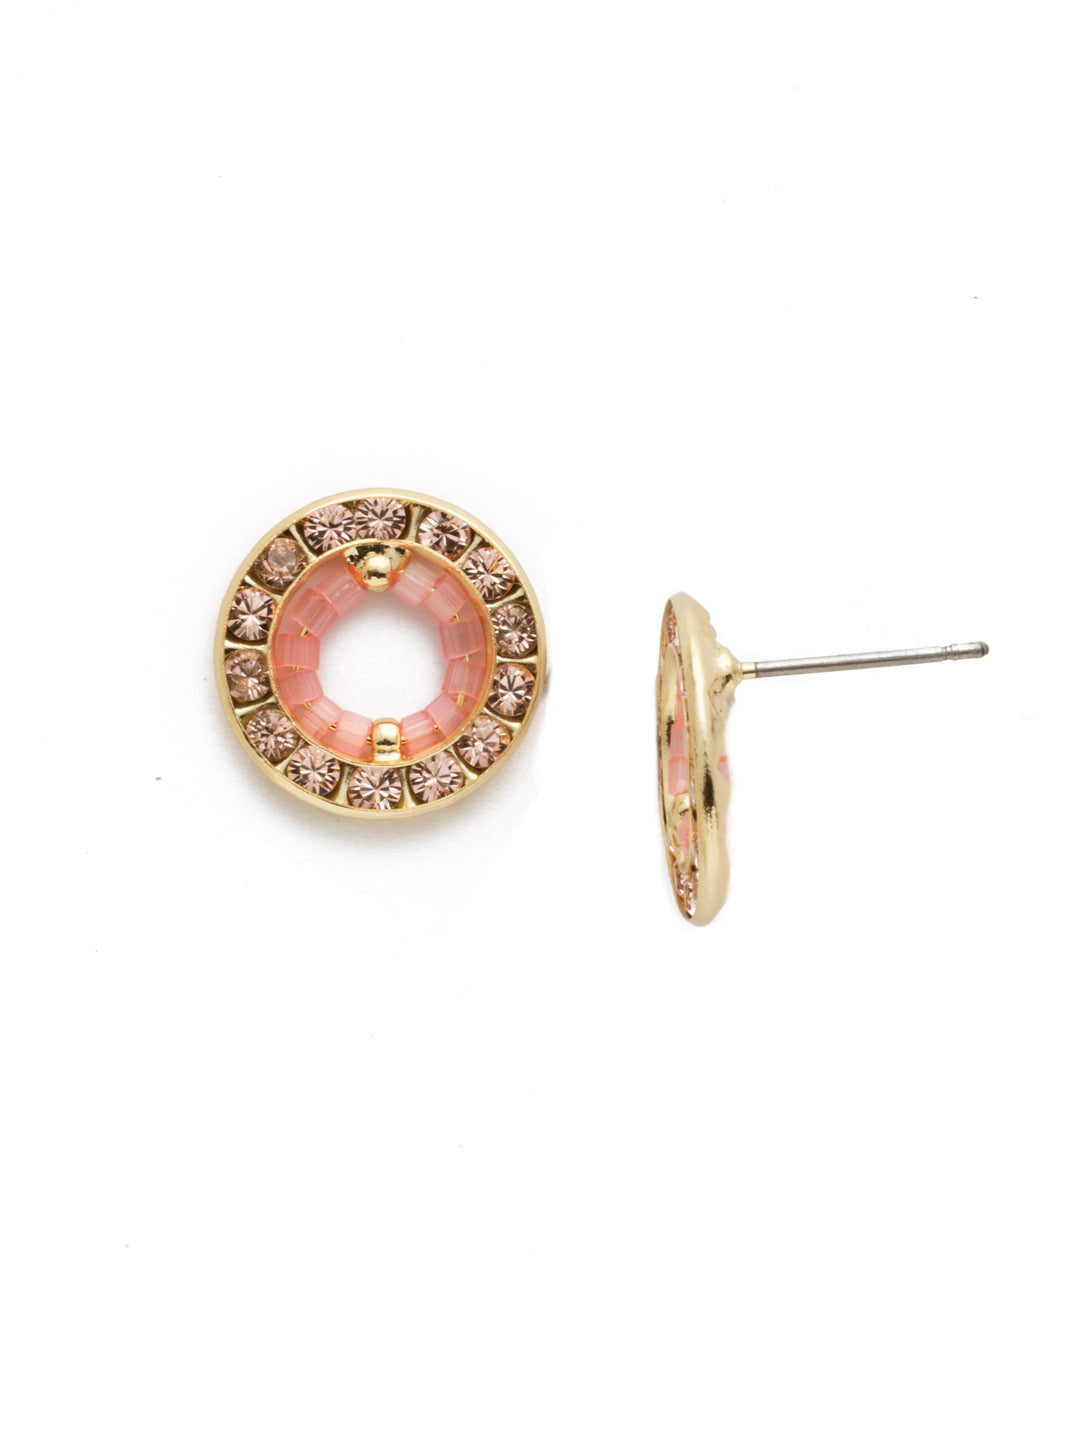 Fire & Ice Stud Earrings - EEH26BGISS